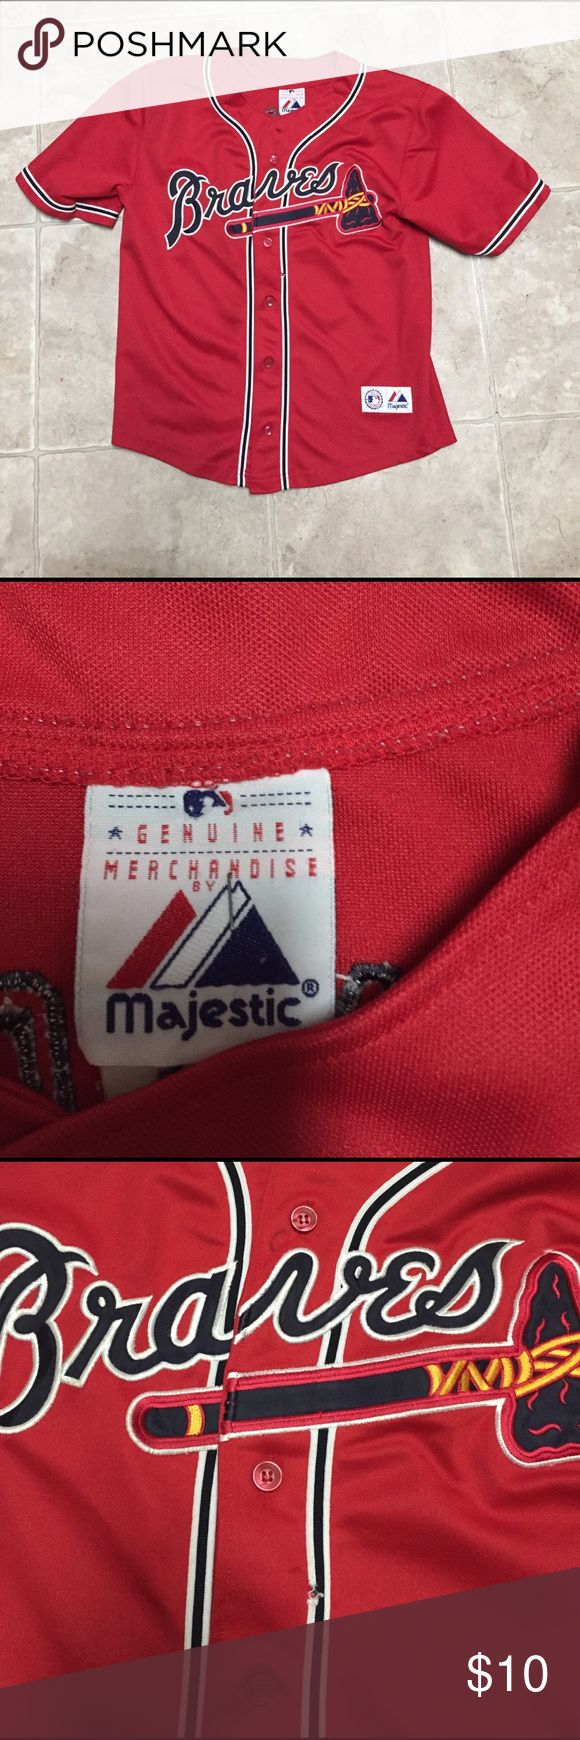 Atlanta Braves shirt Red Atlanta Braves short sleeve boys shirt. Small tear in front and pen mark near top. Not very noticeable. majestic genuine merchandise Shirts & Tops Button Down Shirts